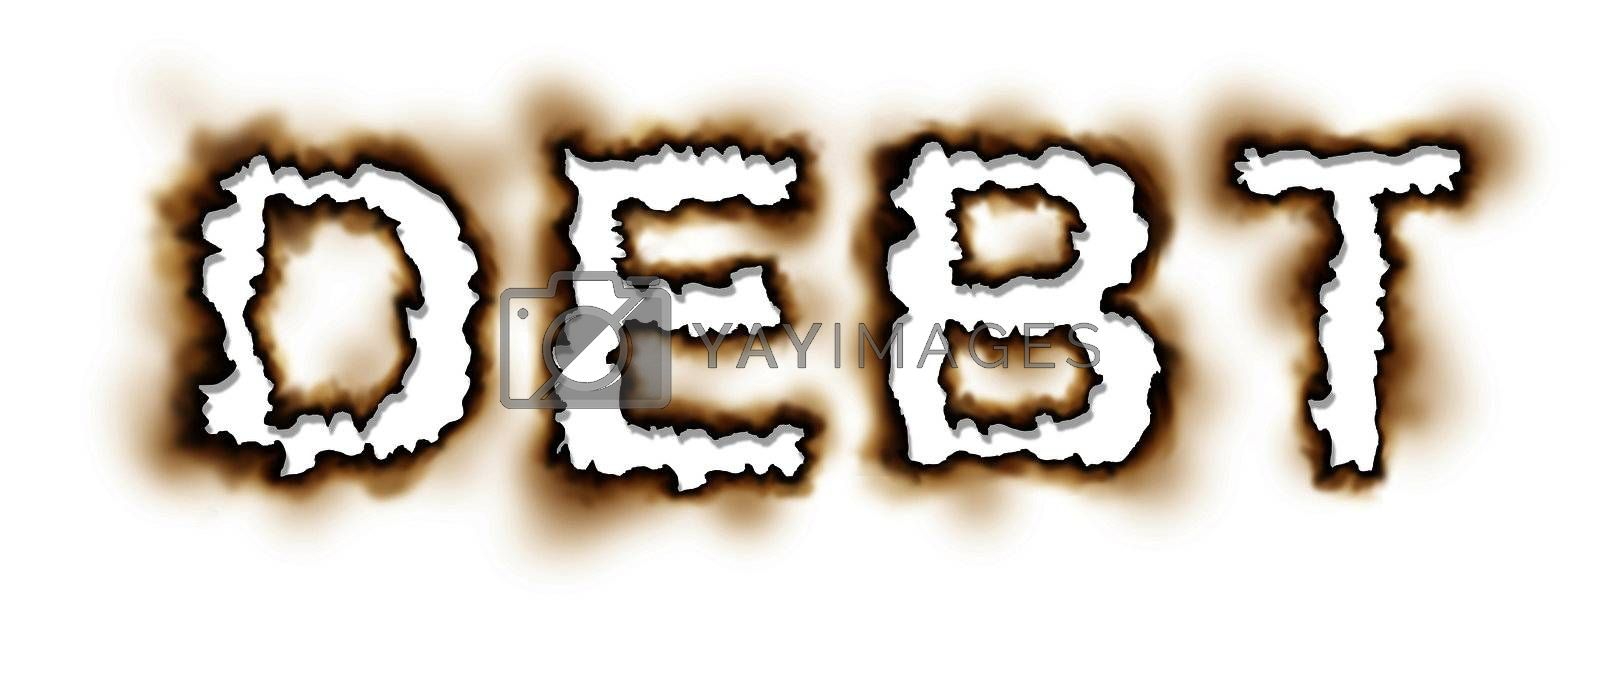 Burning Debt Problems and financial crisis concept with the word burnt as a hole in the paper as an icon of finance despair and credit stree on a white background.